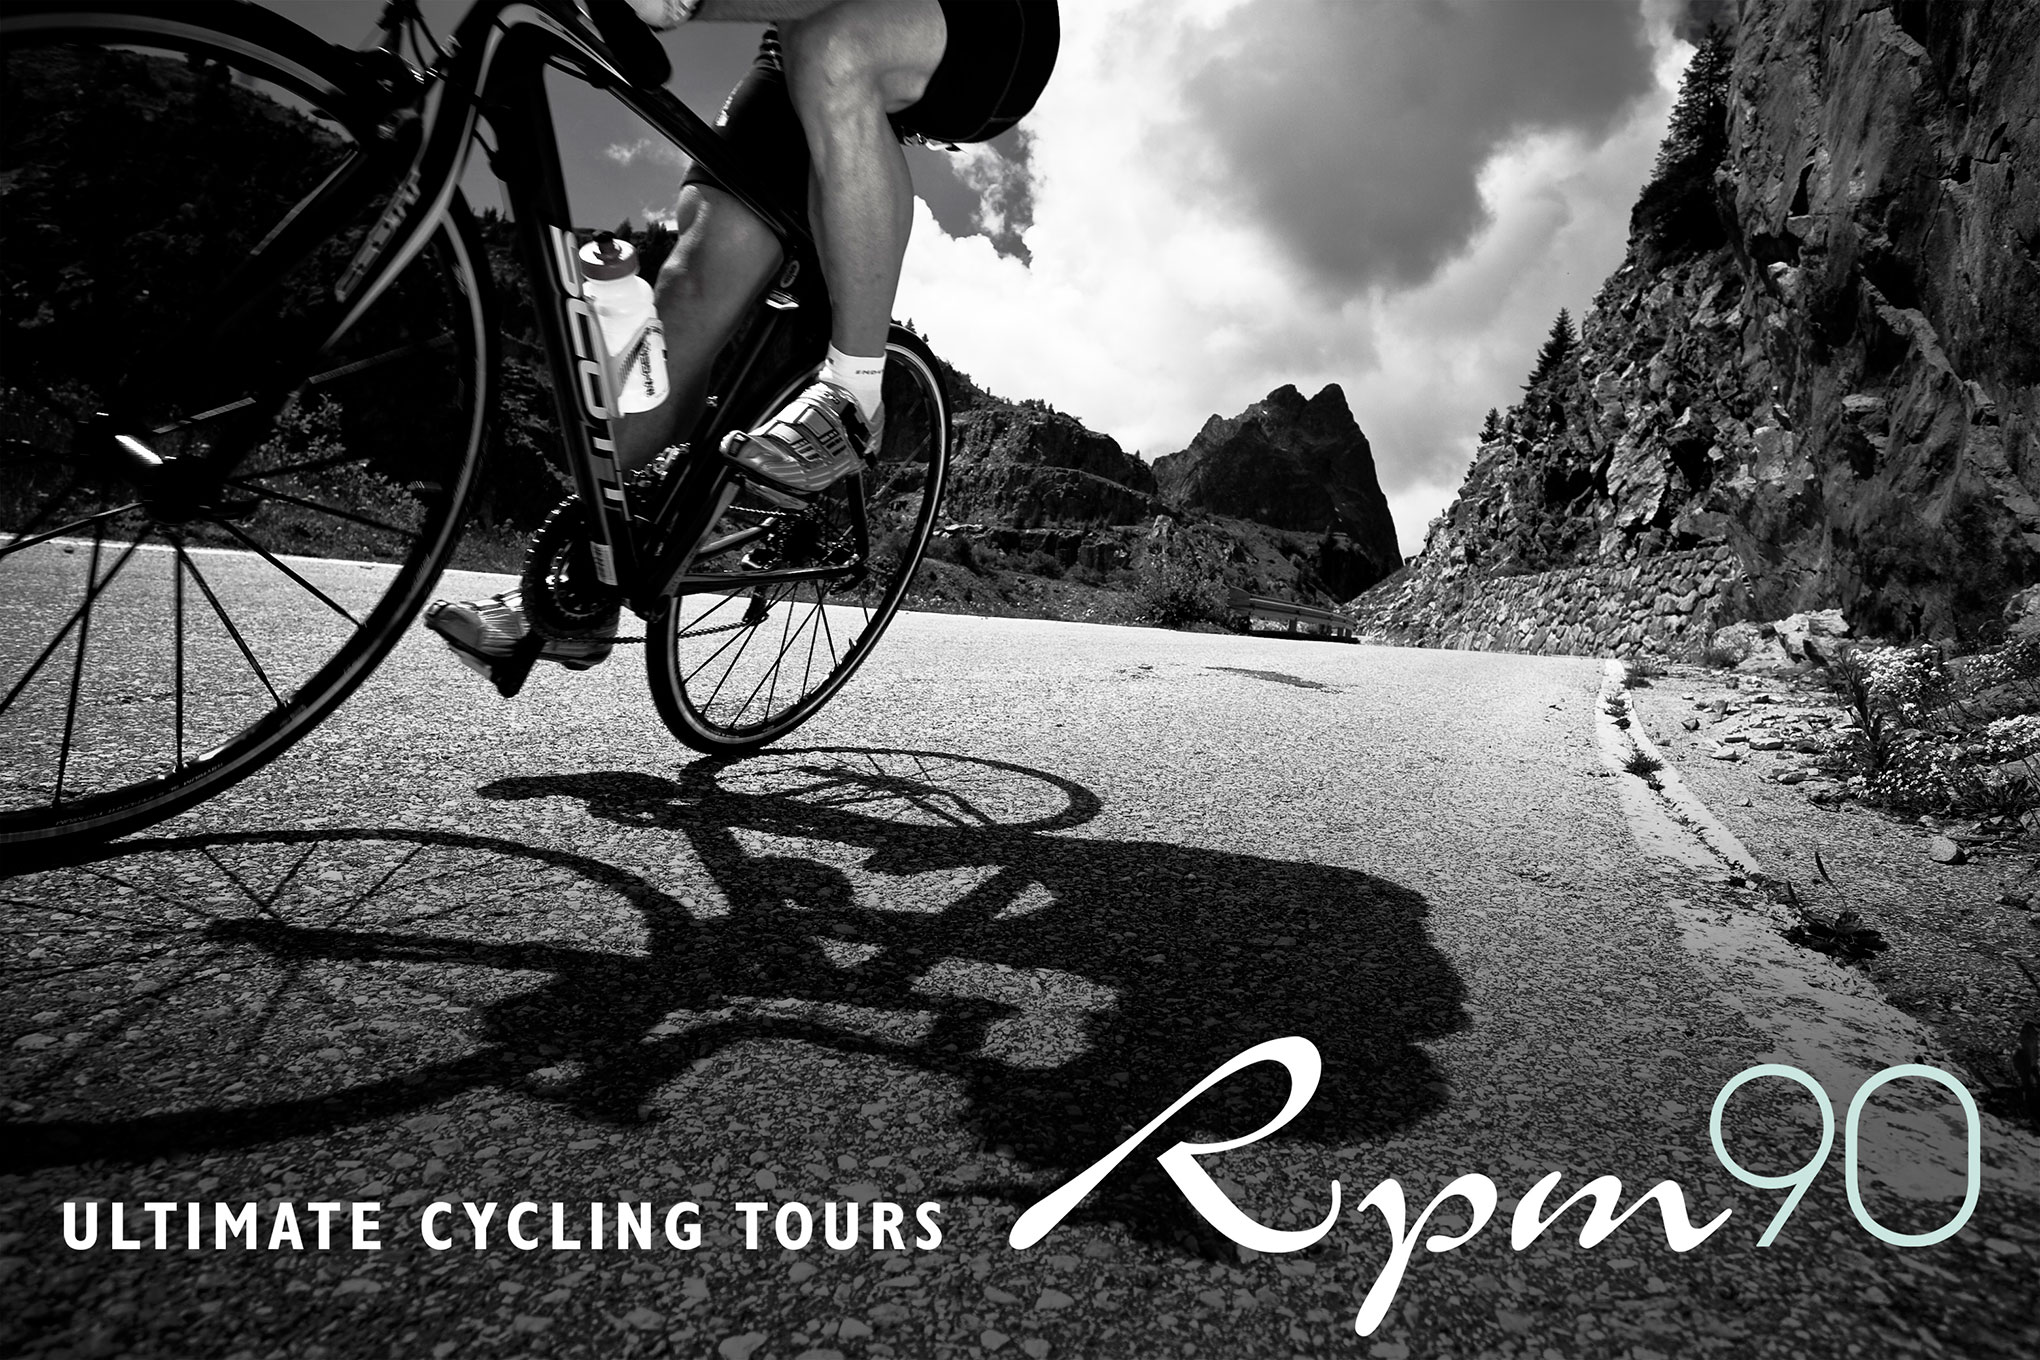 Branding for RPM90 Ultimate Cycling Tours